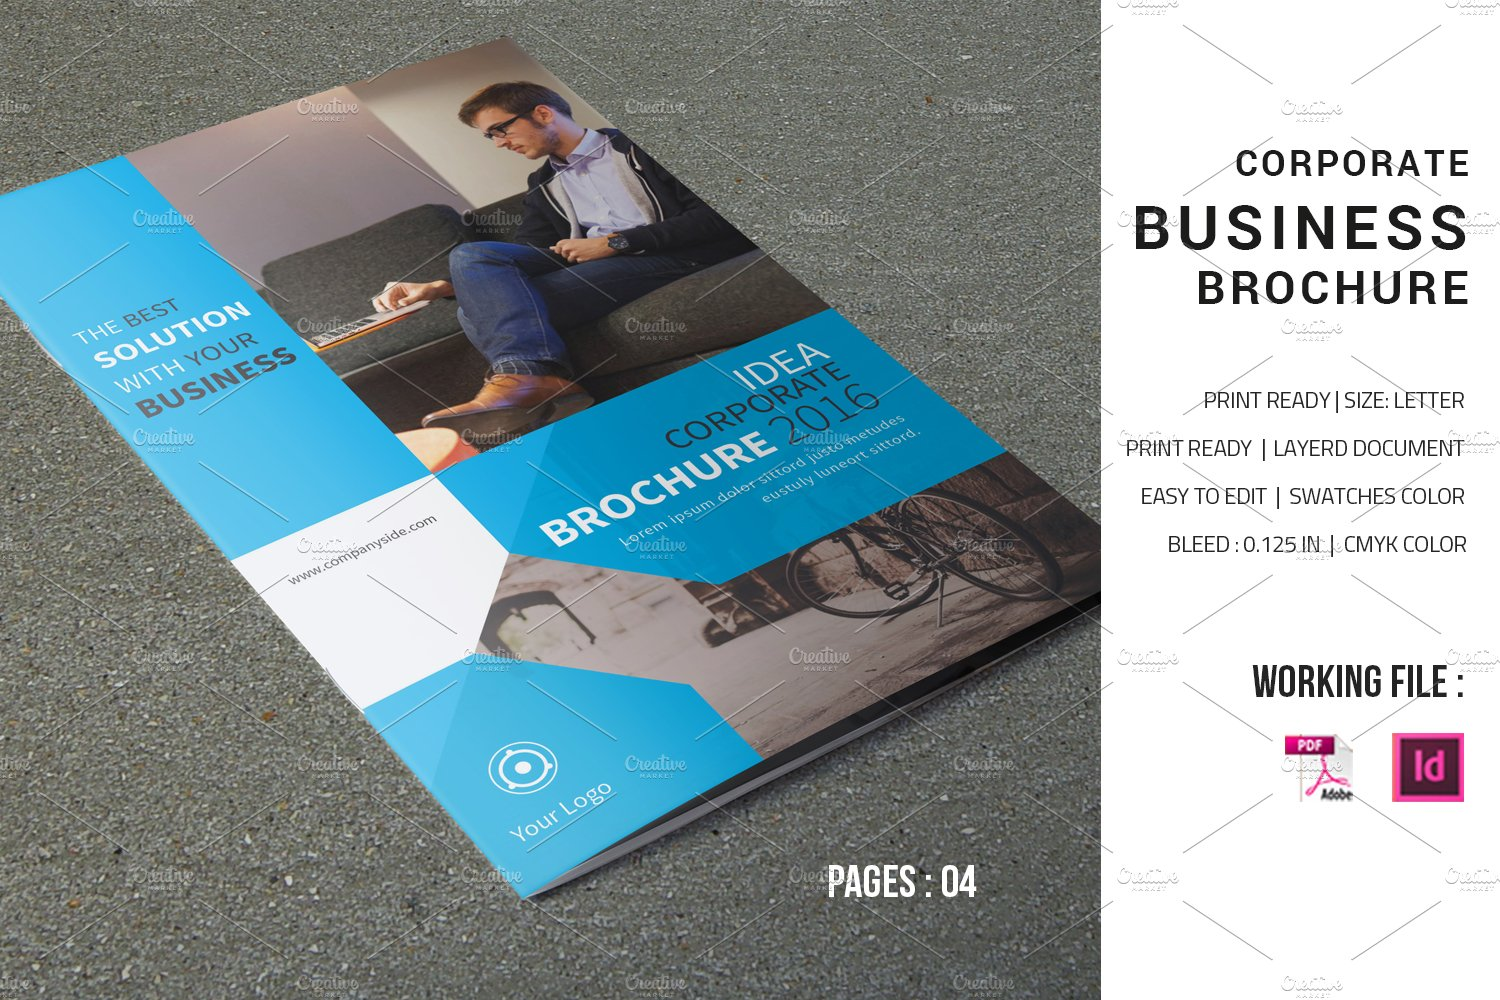 Corporate brochure template v598 brochure templates for Company brochure template